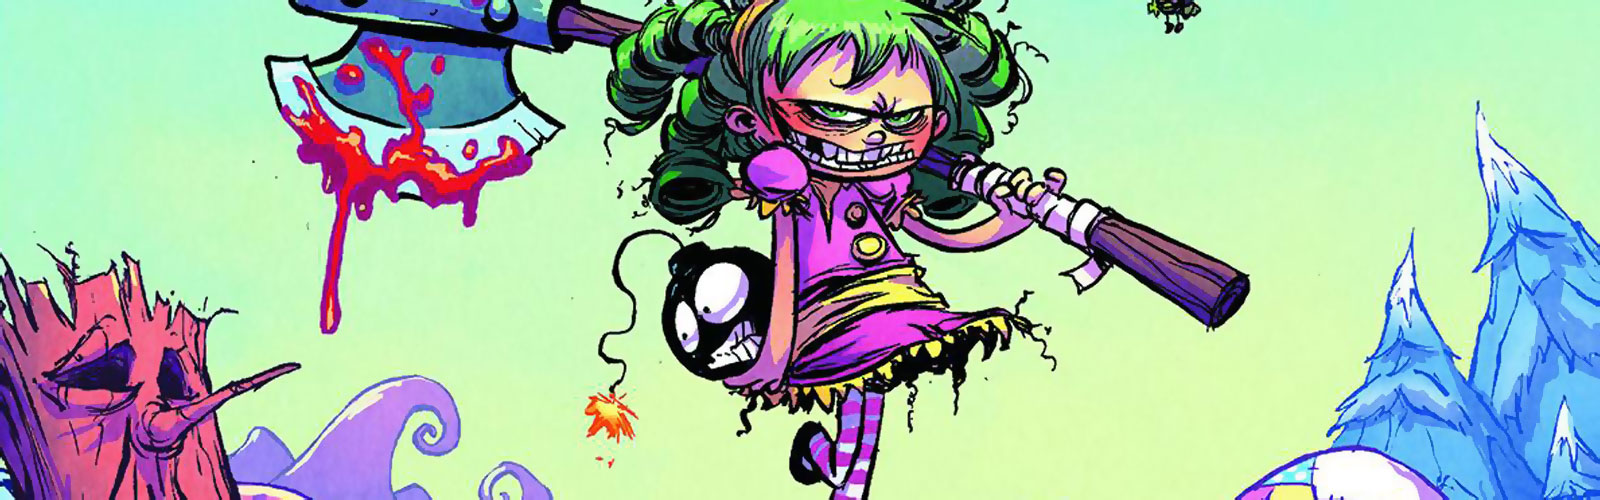 Previews #322: I Hate Fairyland